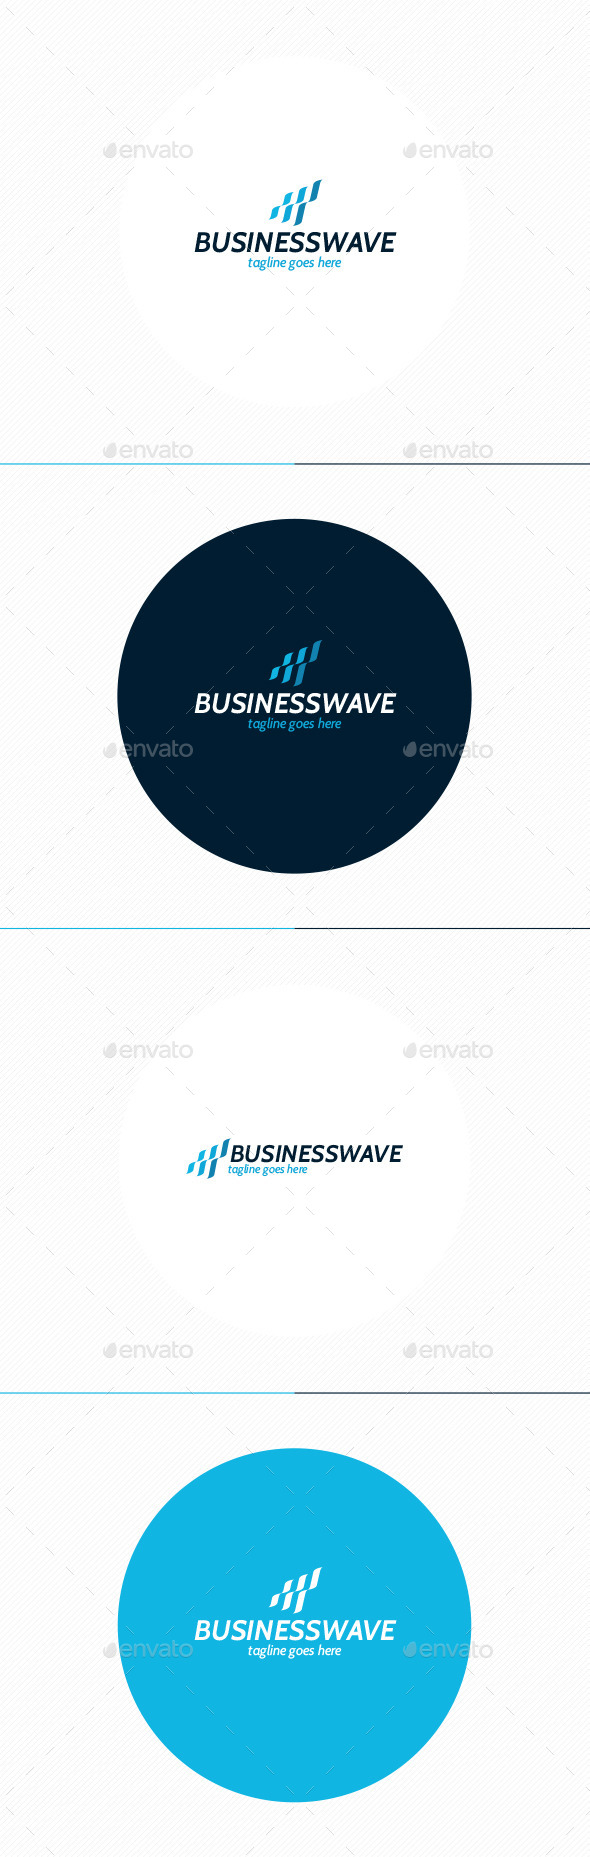 Business Wave Logo - Vector Abstract